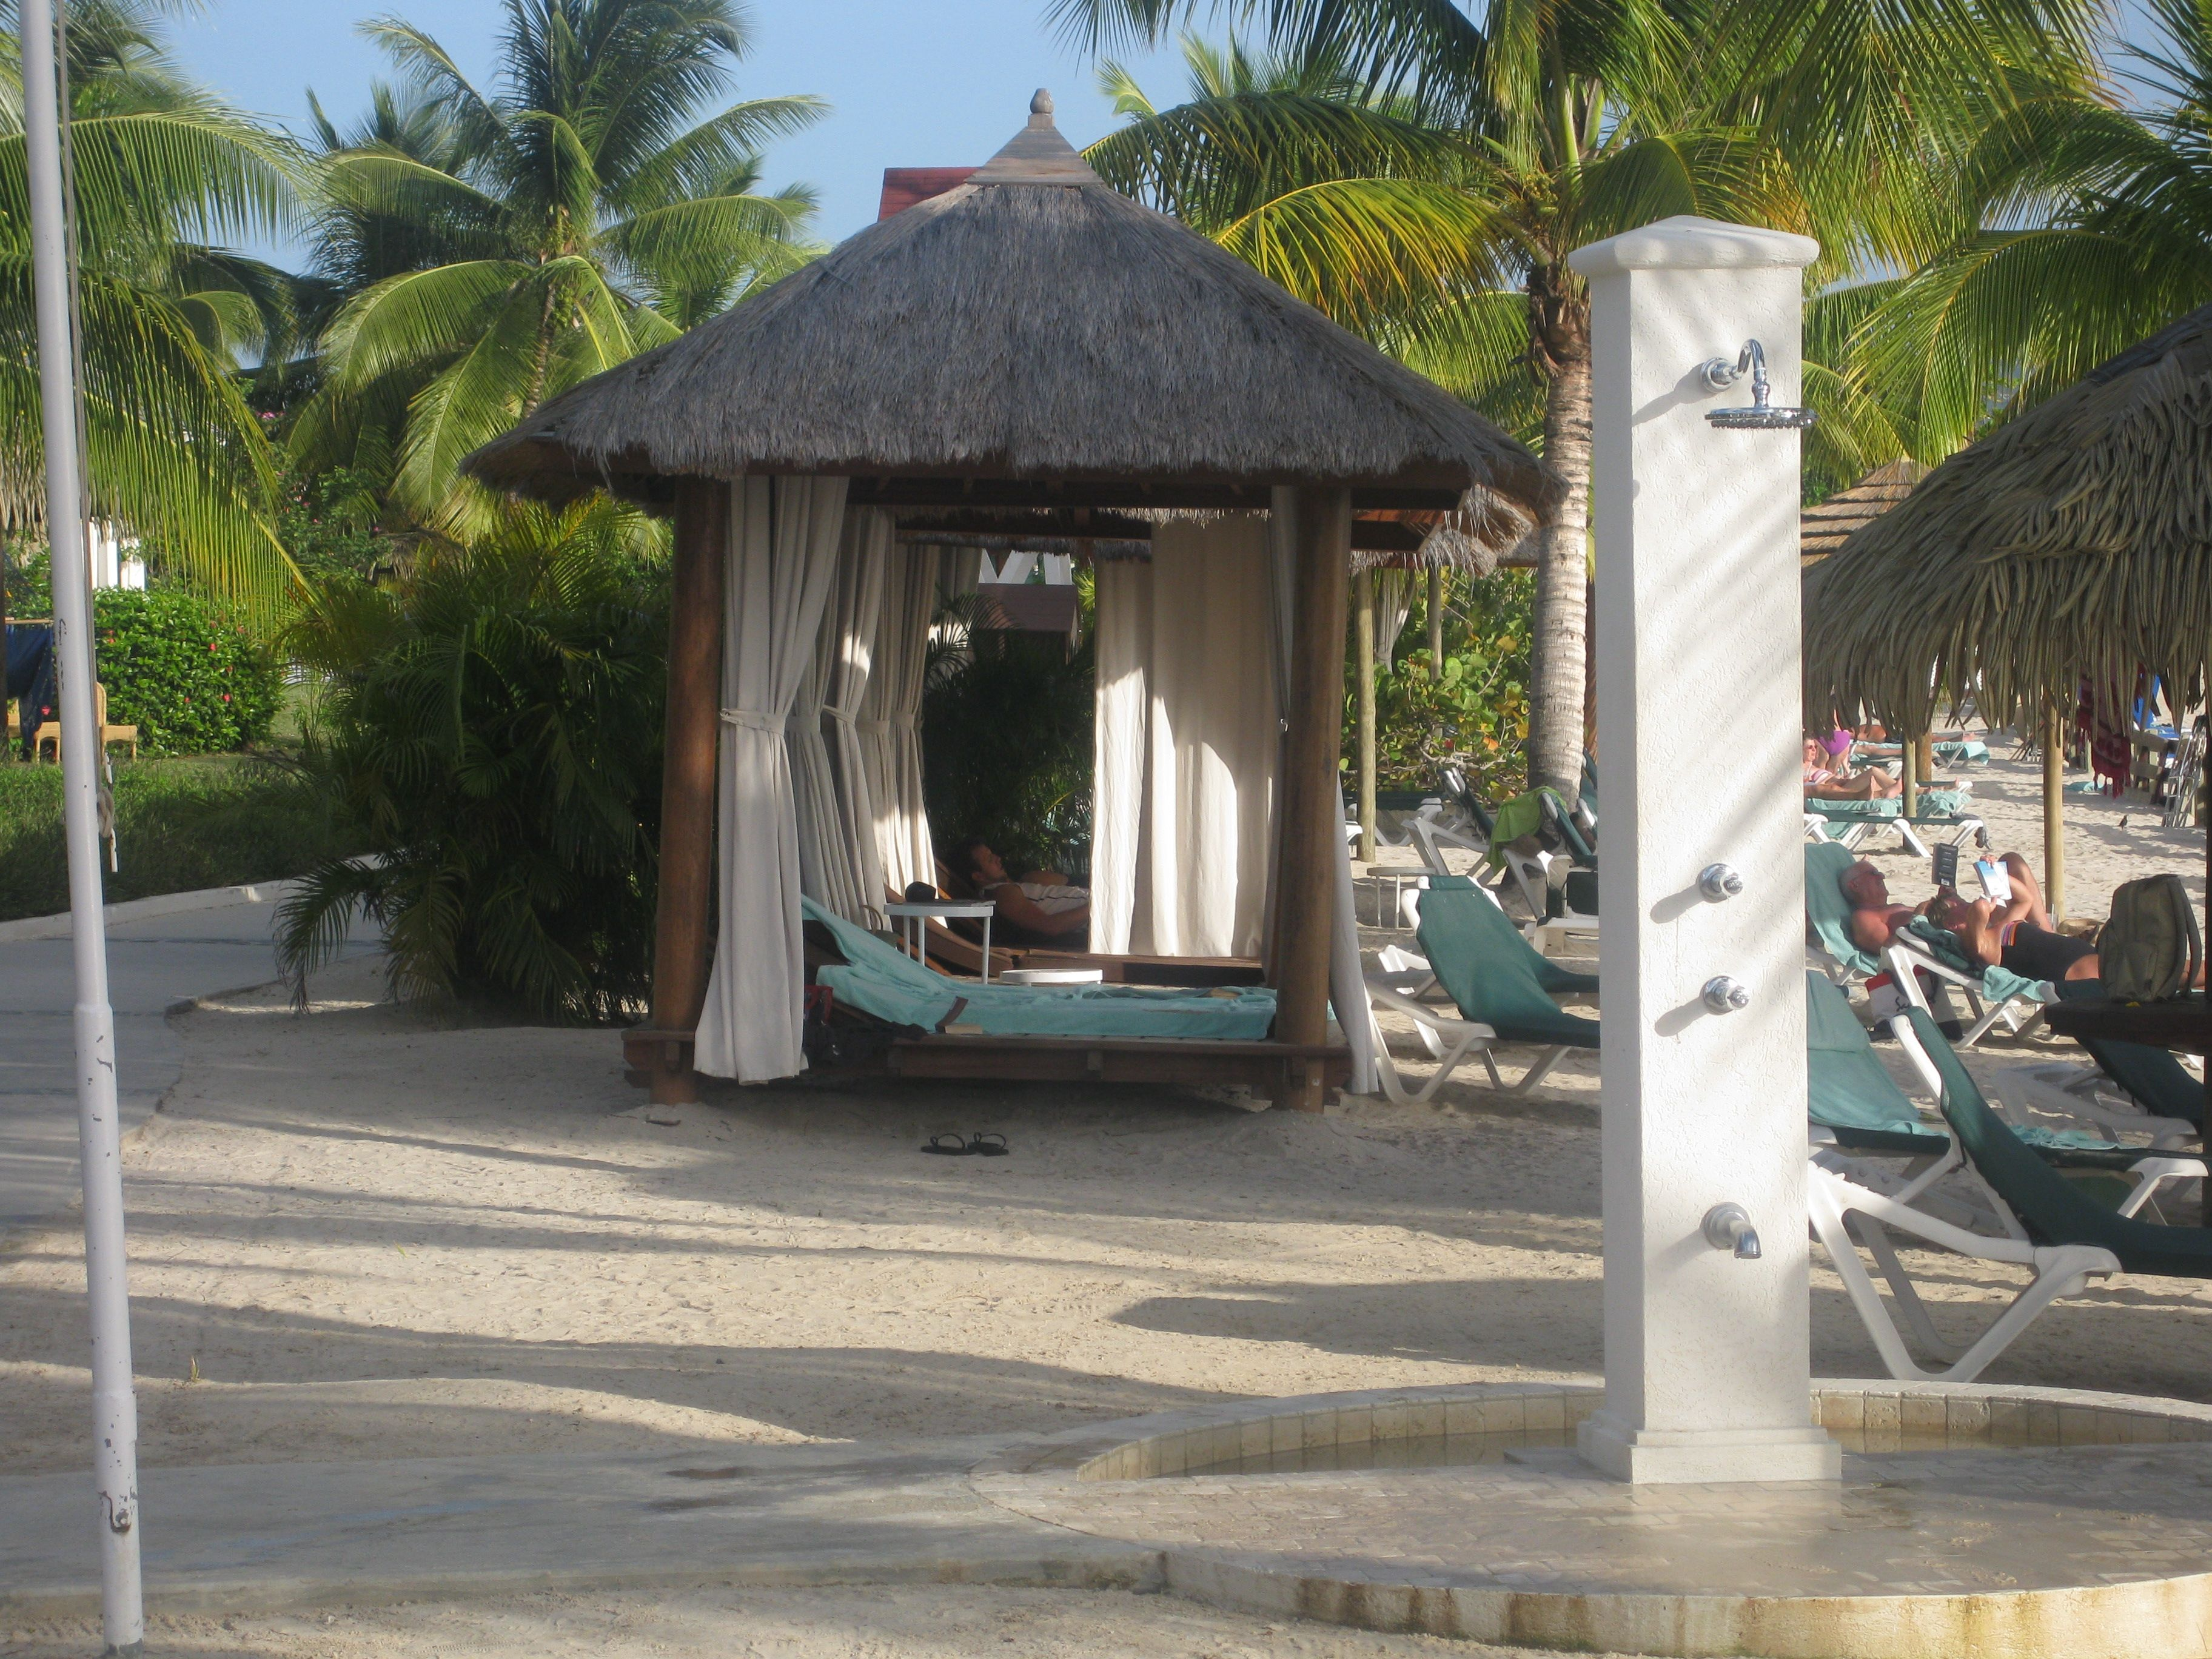 Private Beach Cabanas At The Sandals Grande St Lucia Contact Me Swabt Comcast To Book Today